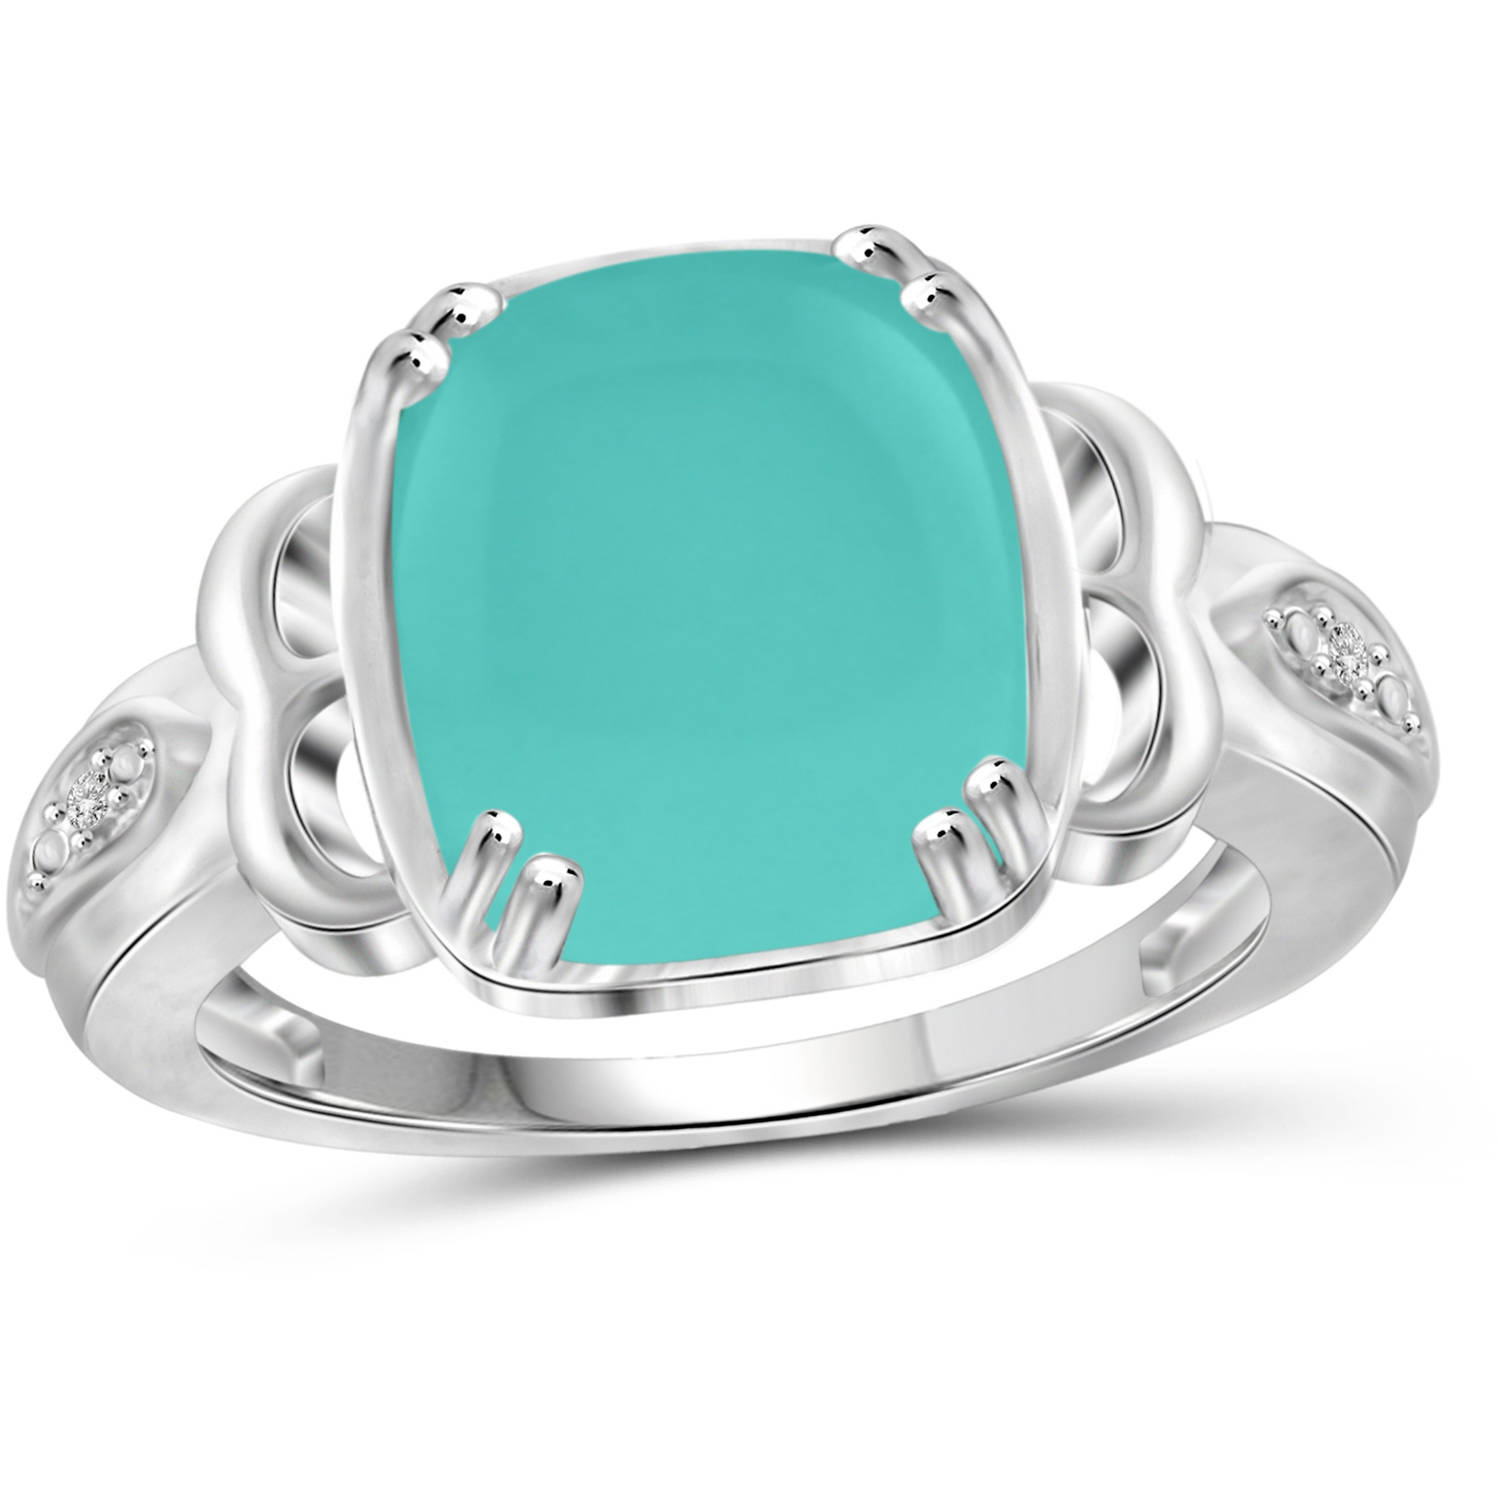 JewelersClub 5 Carat T.G.W. Chalcedony and White Diamond Accent Sterling Silver Fashion Ring by JewelersClub